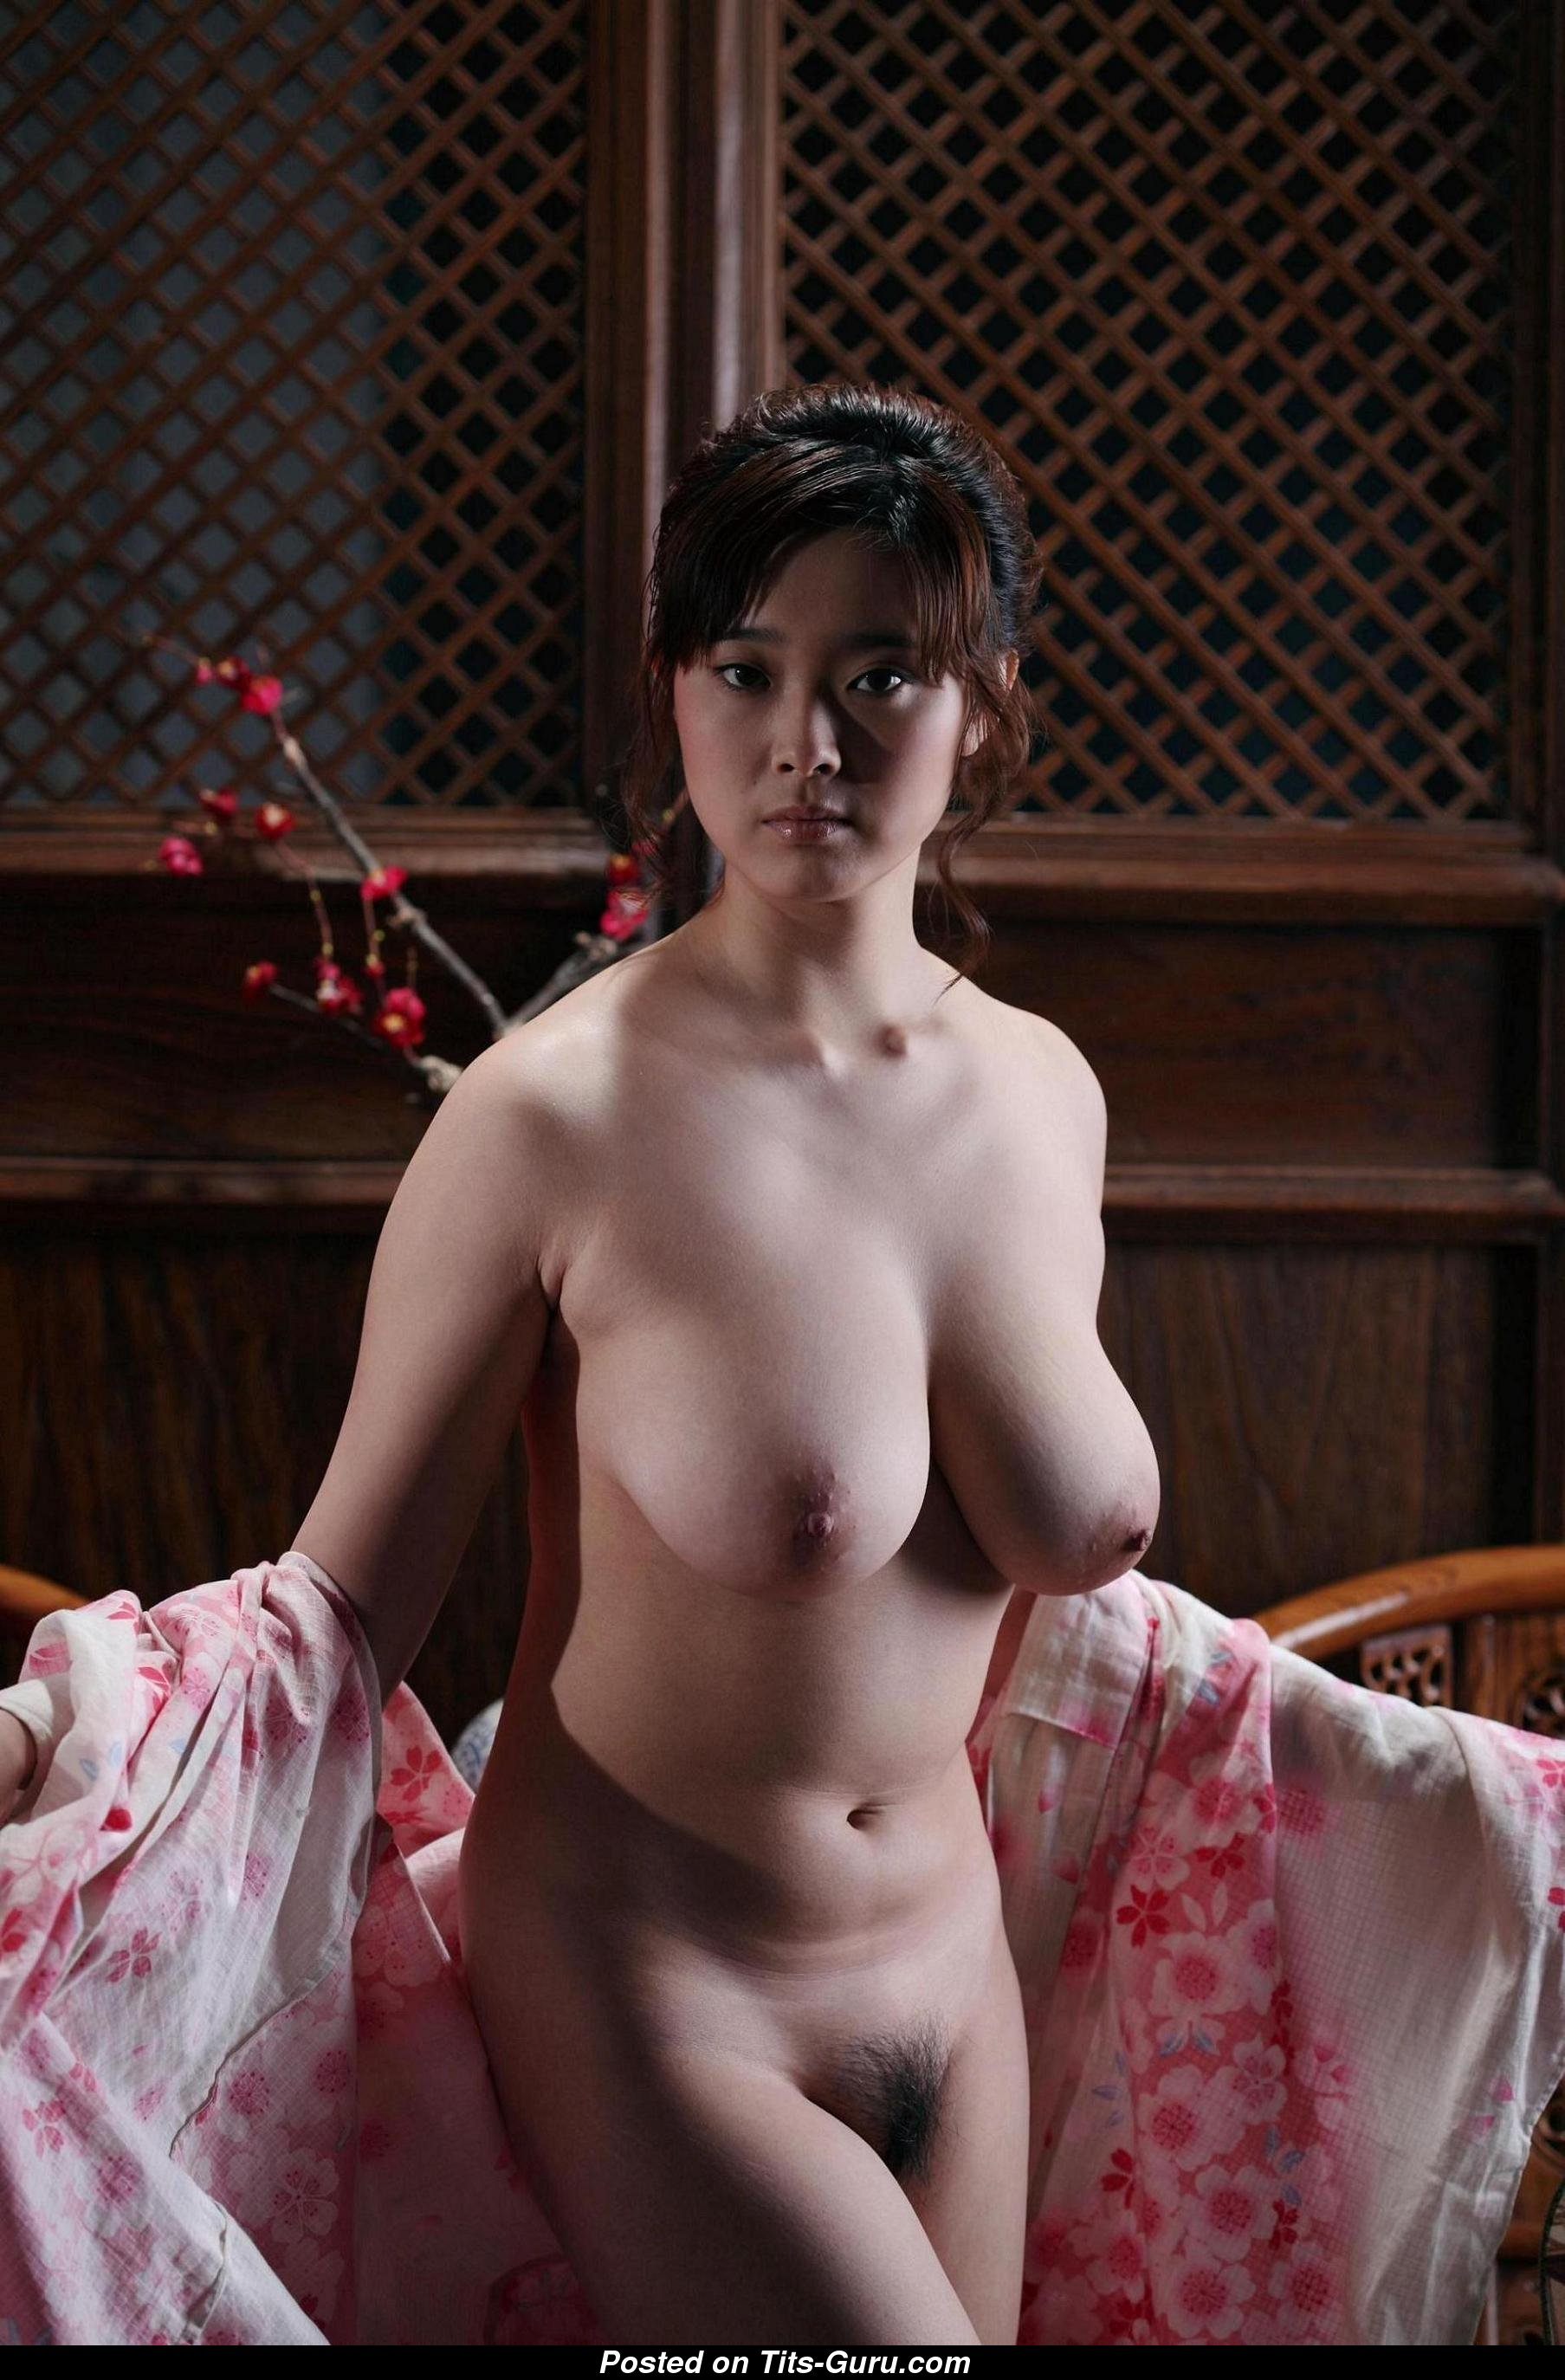 Asian Woman With Nude H Size Tit  Long Nipples 18 Pix -6694